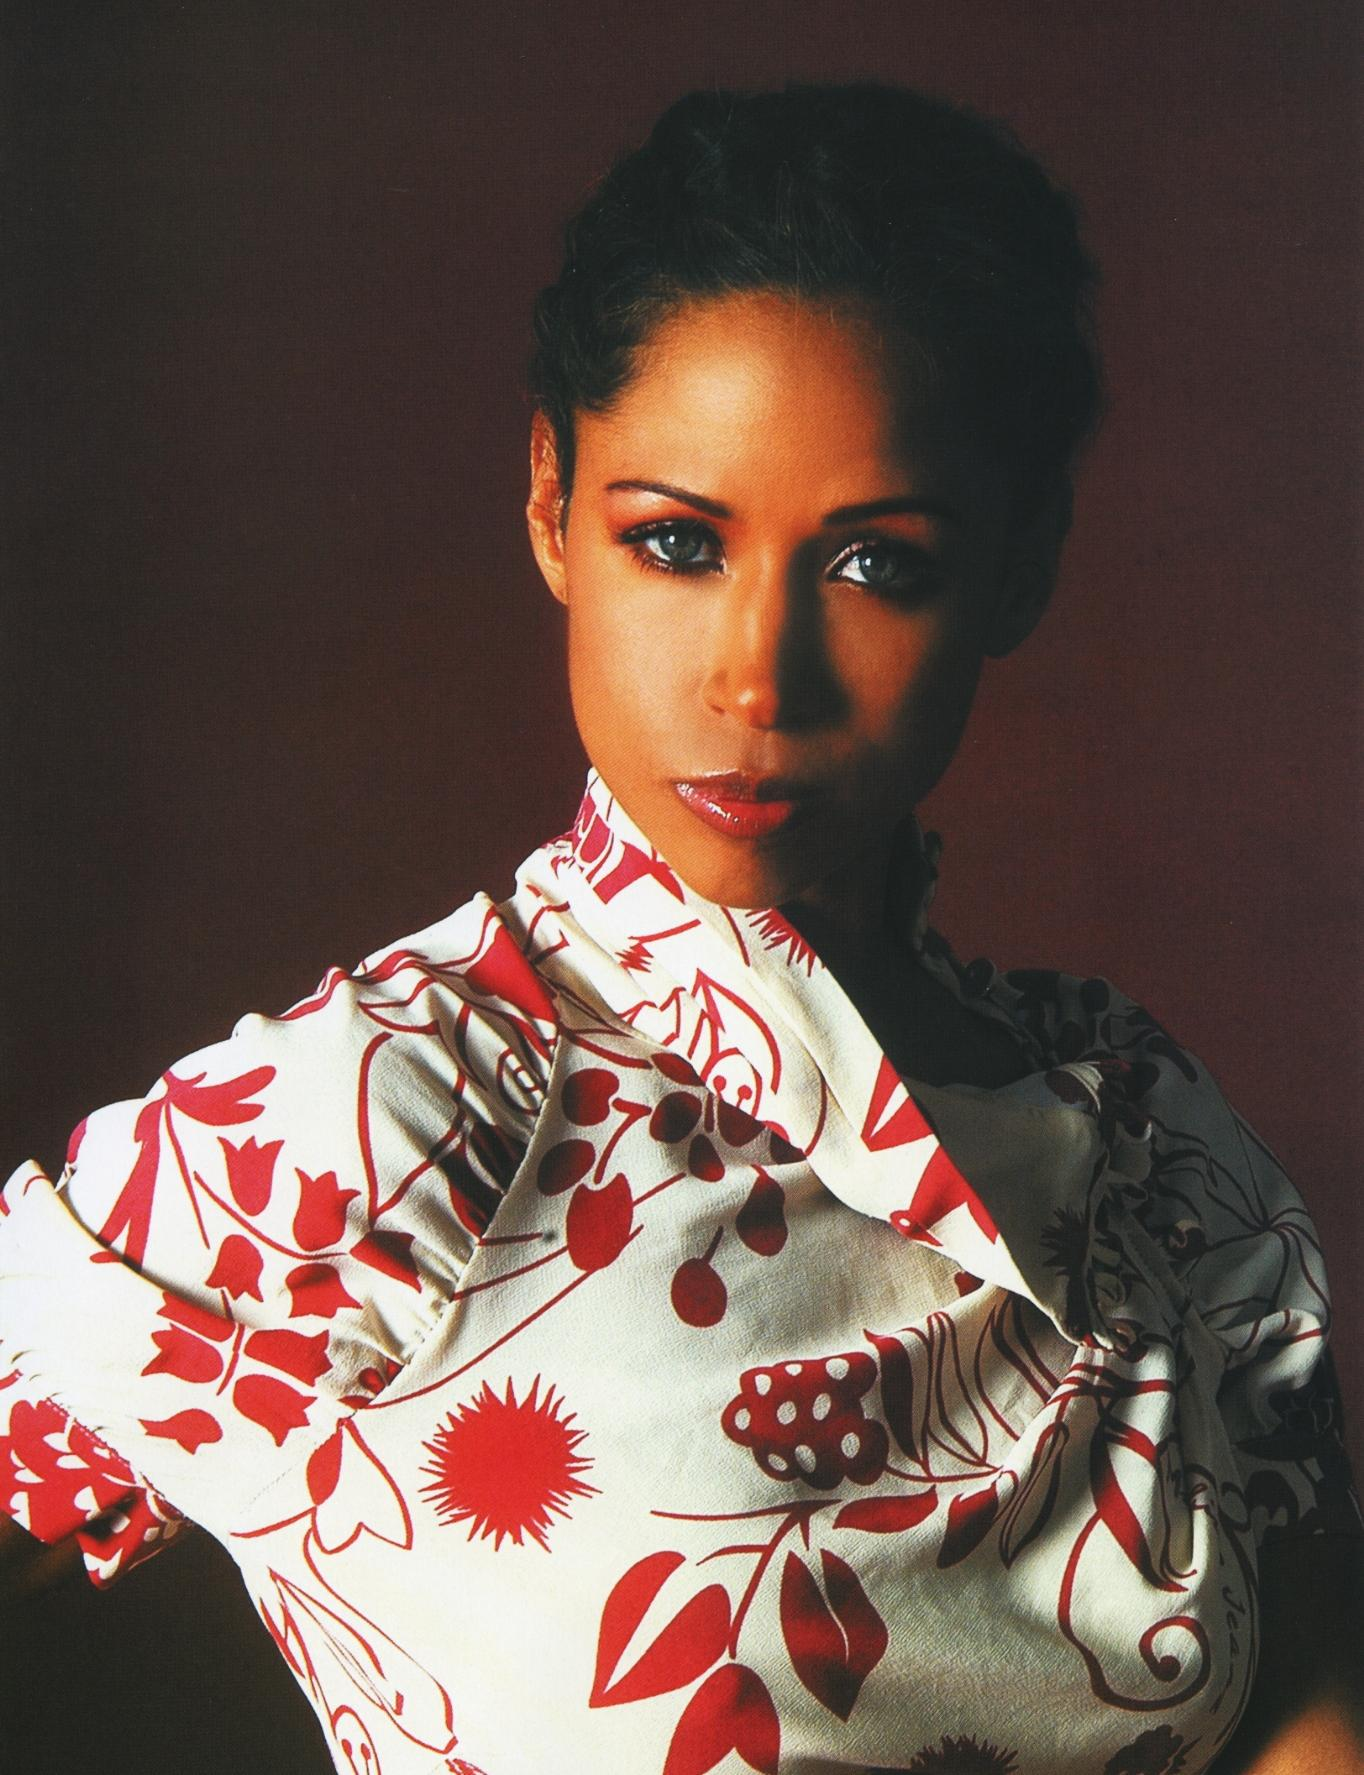 80118_StaceyDash10_122_463lo.jpg